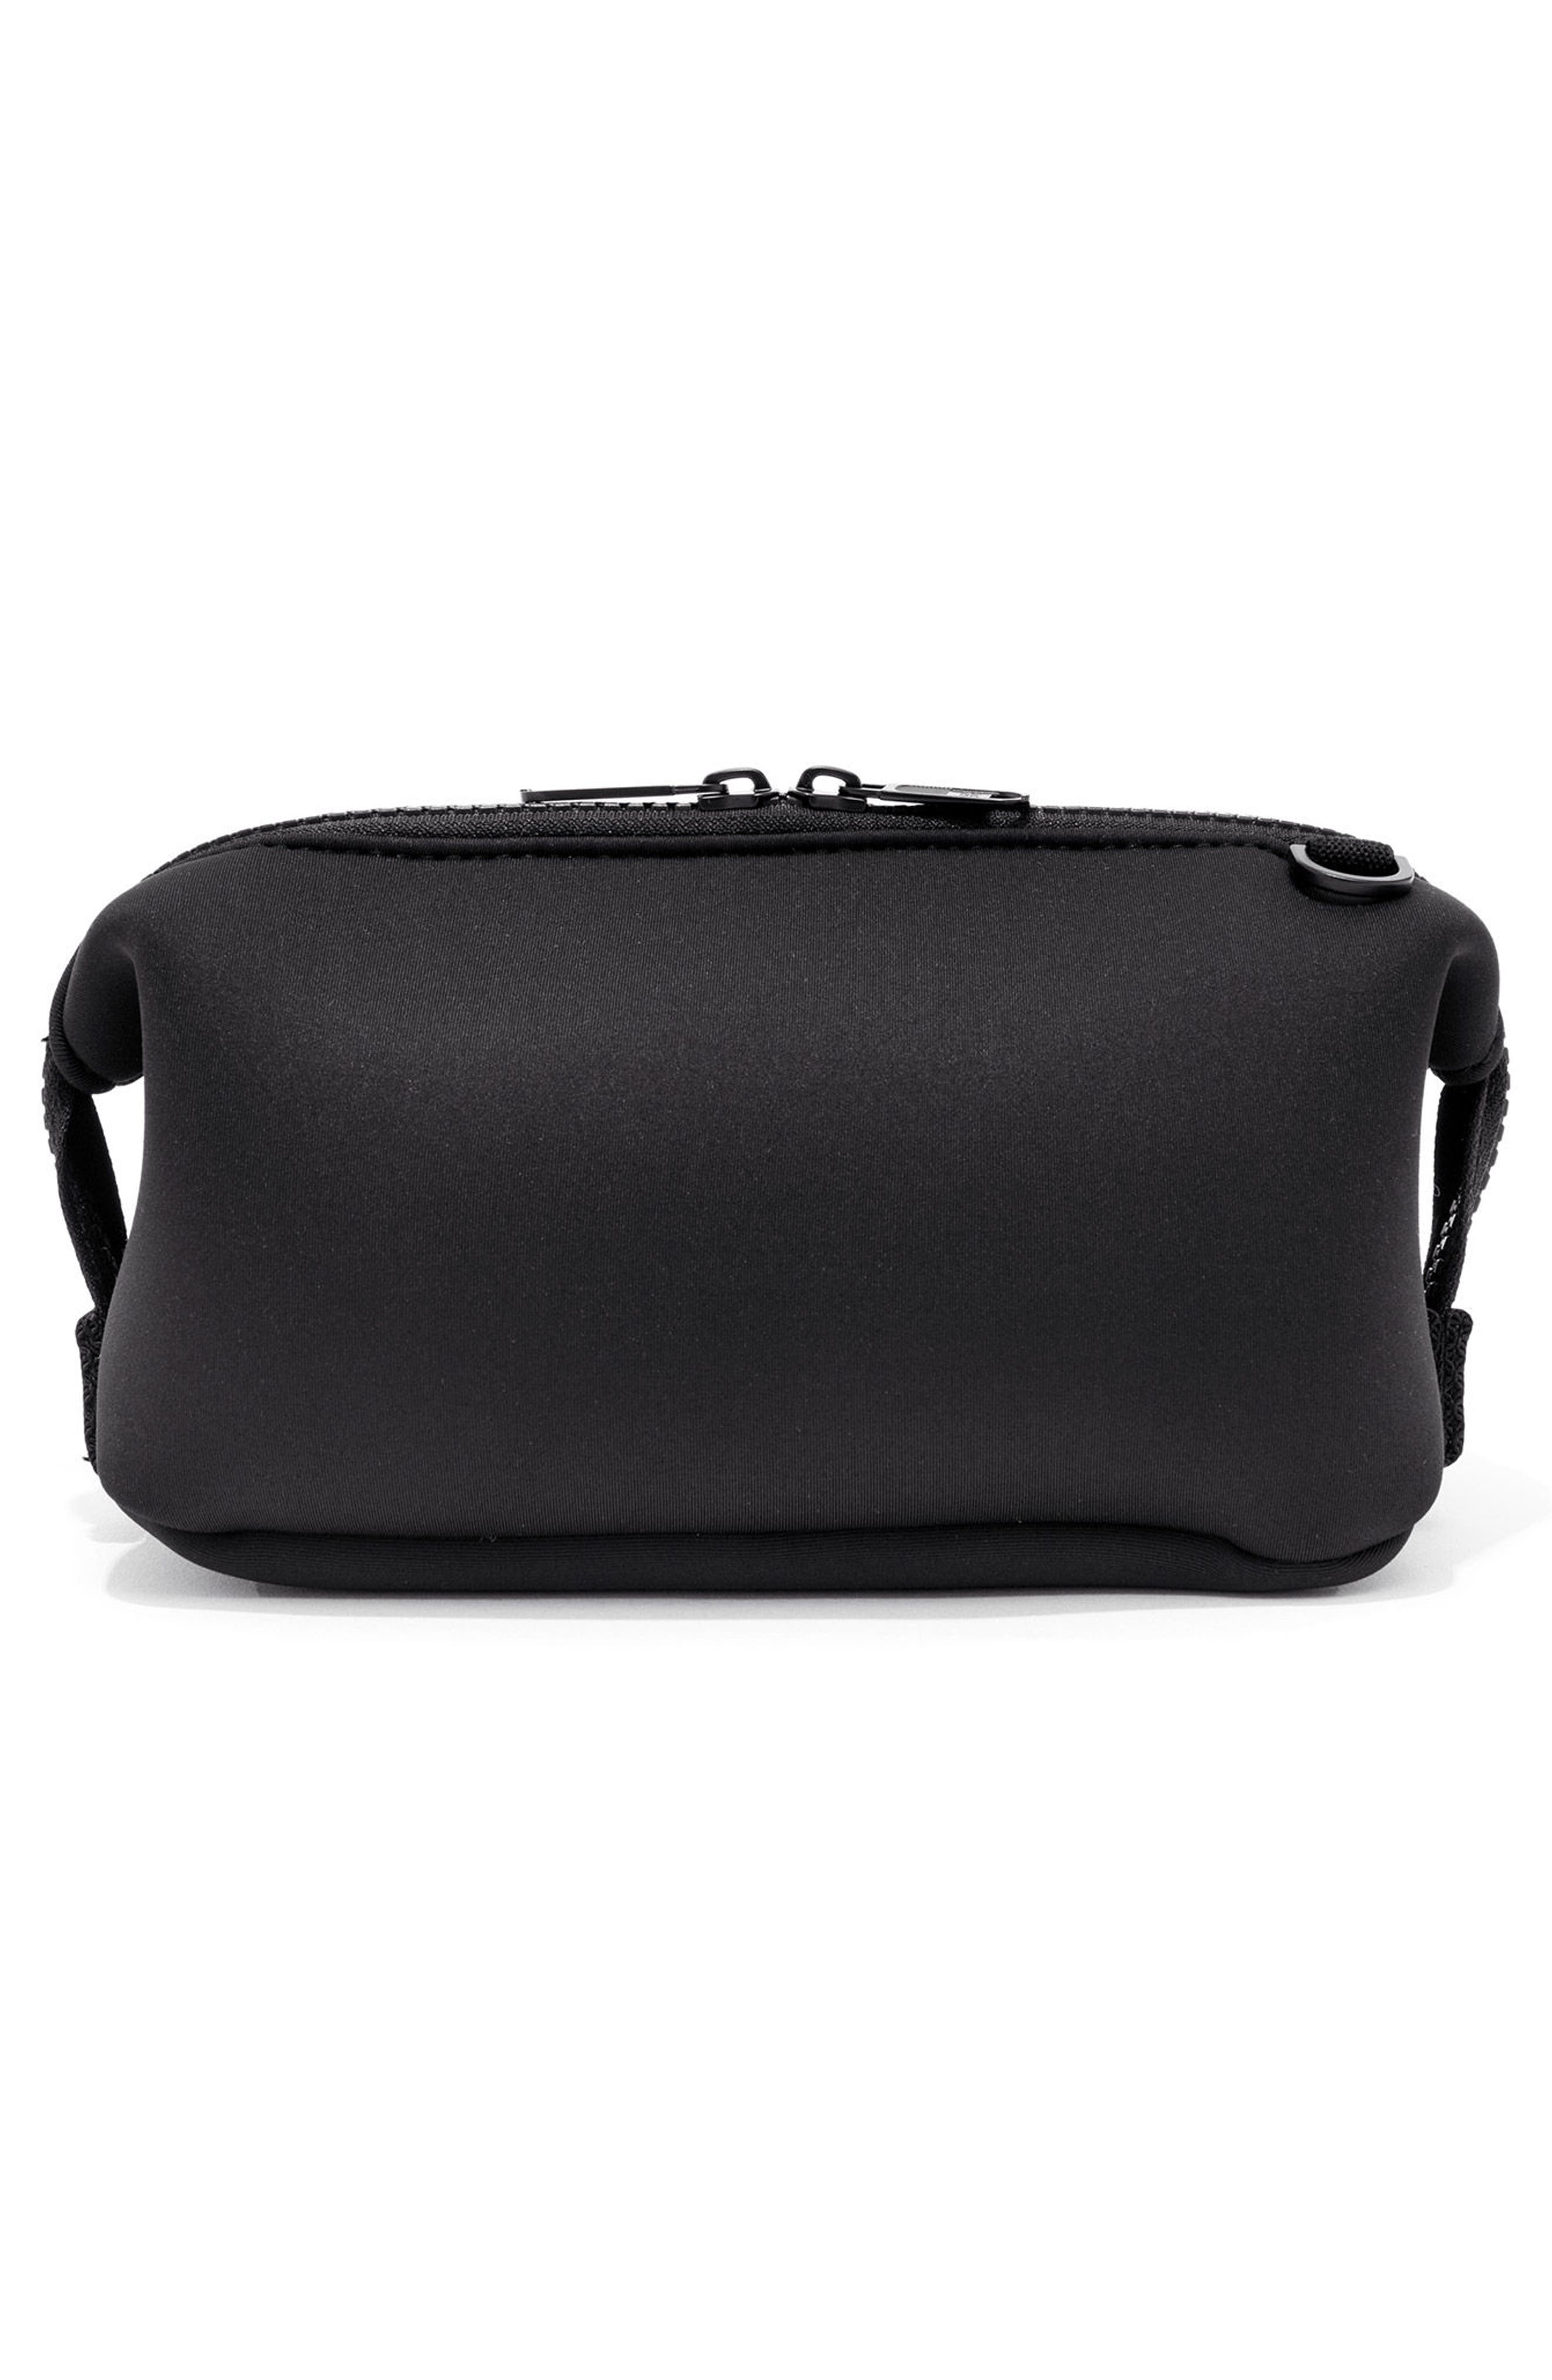 Small Hunter Neoprene Toiletry Bag,                             Alternate thumbnail 2, color,                             001